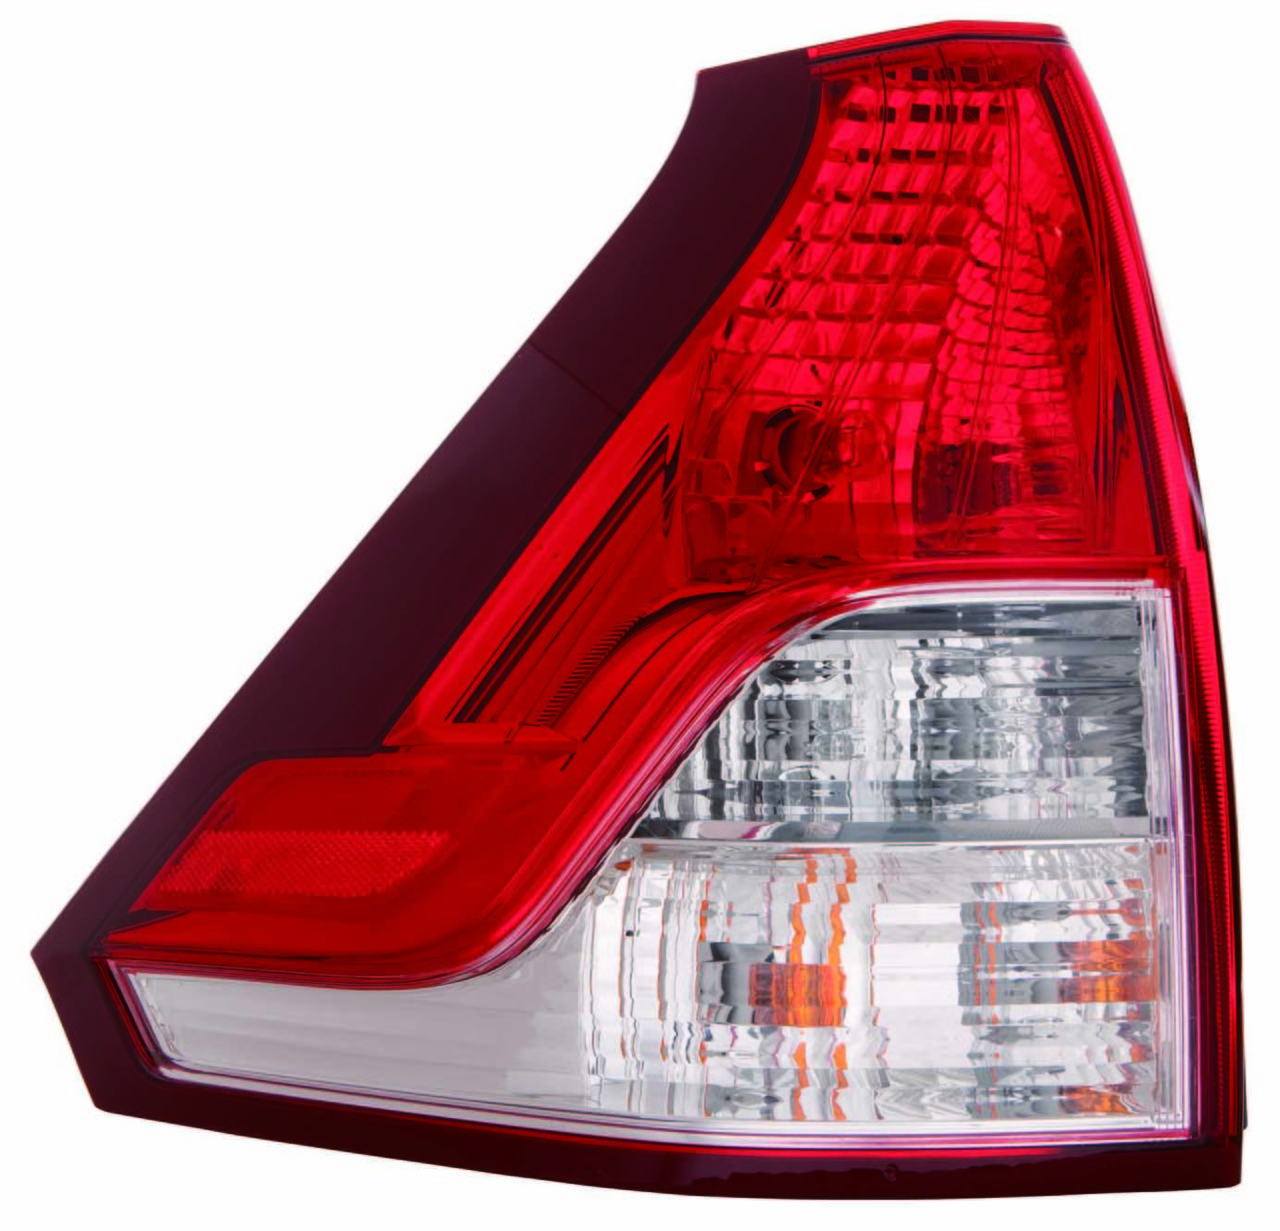 Honda CRV 2012 2013 2014 tail light left driver